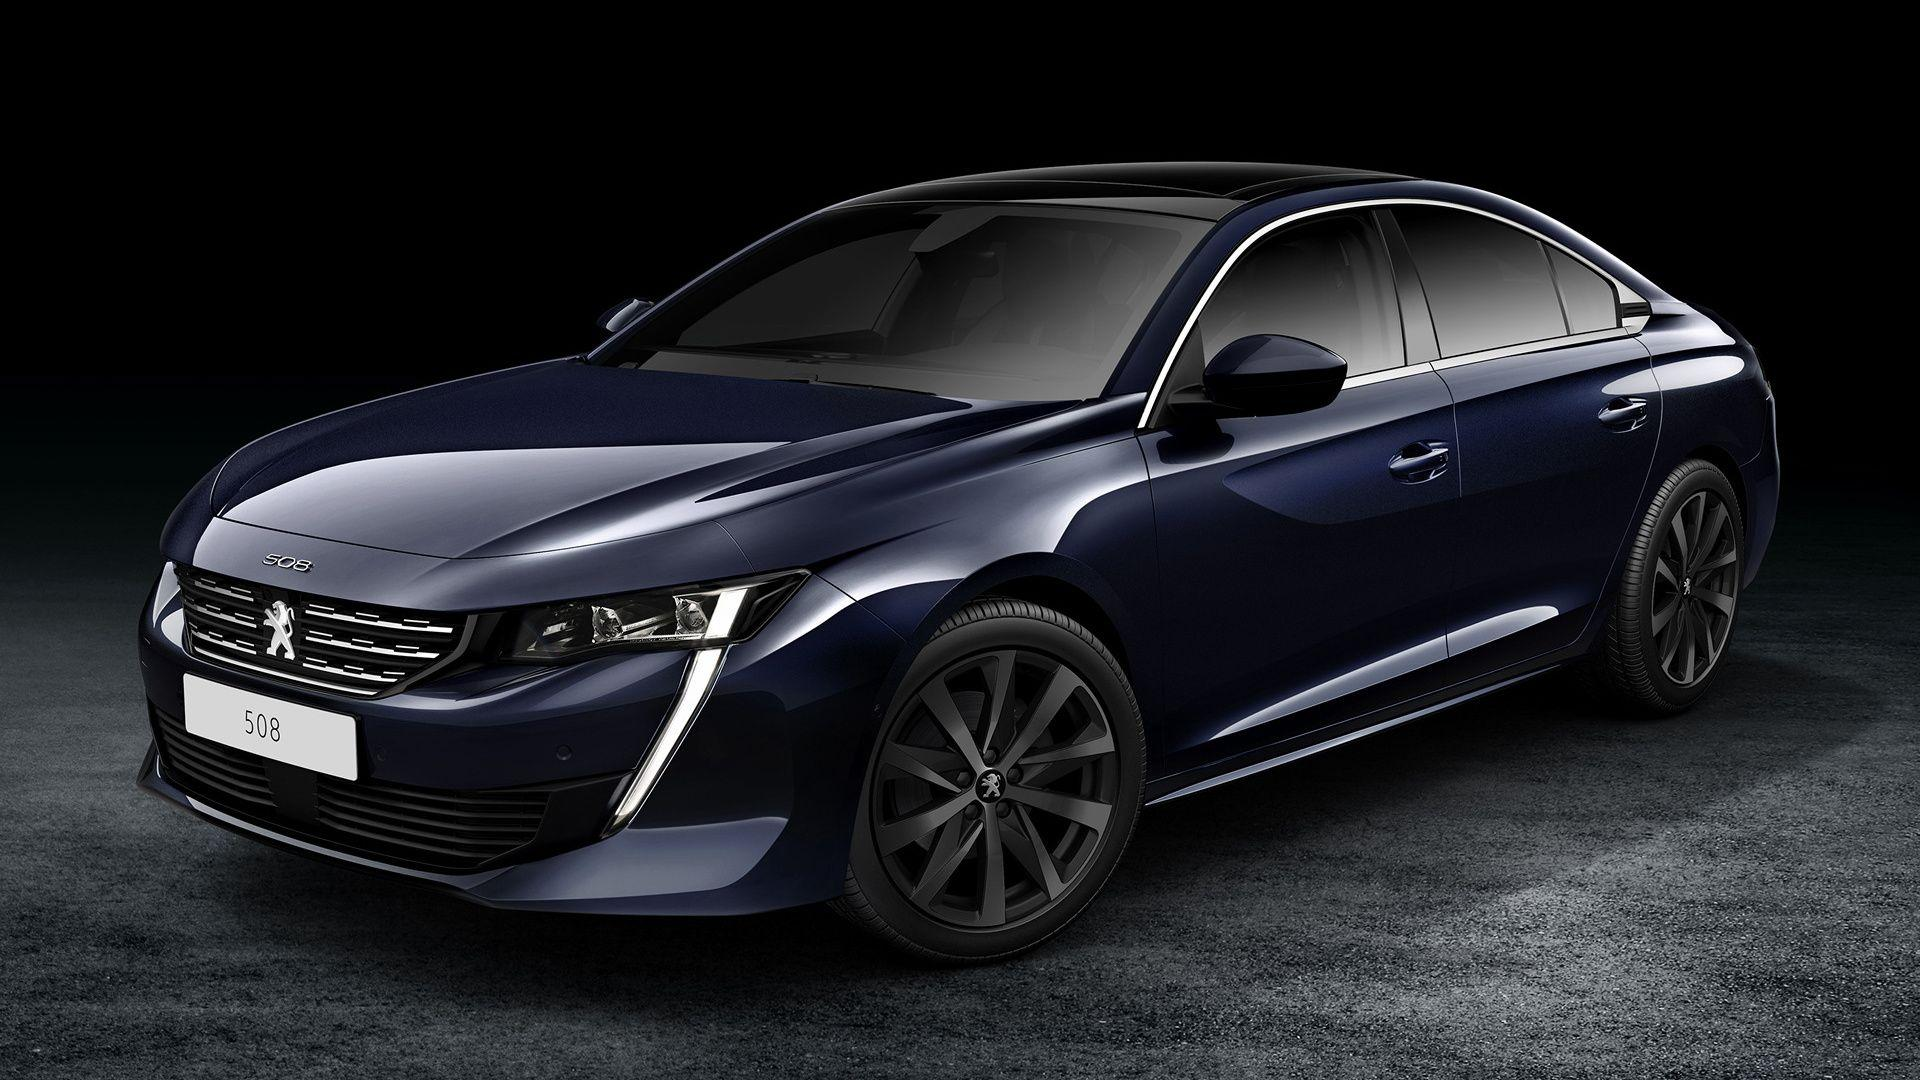 2018 Peugeot 508 Full HD Wallpapers and Backgrounds Image